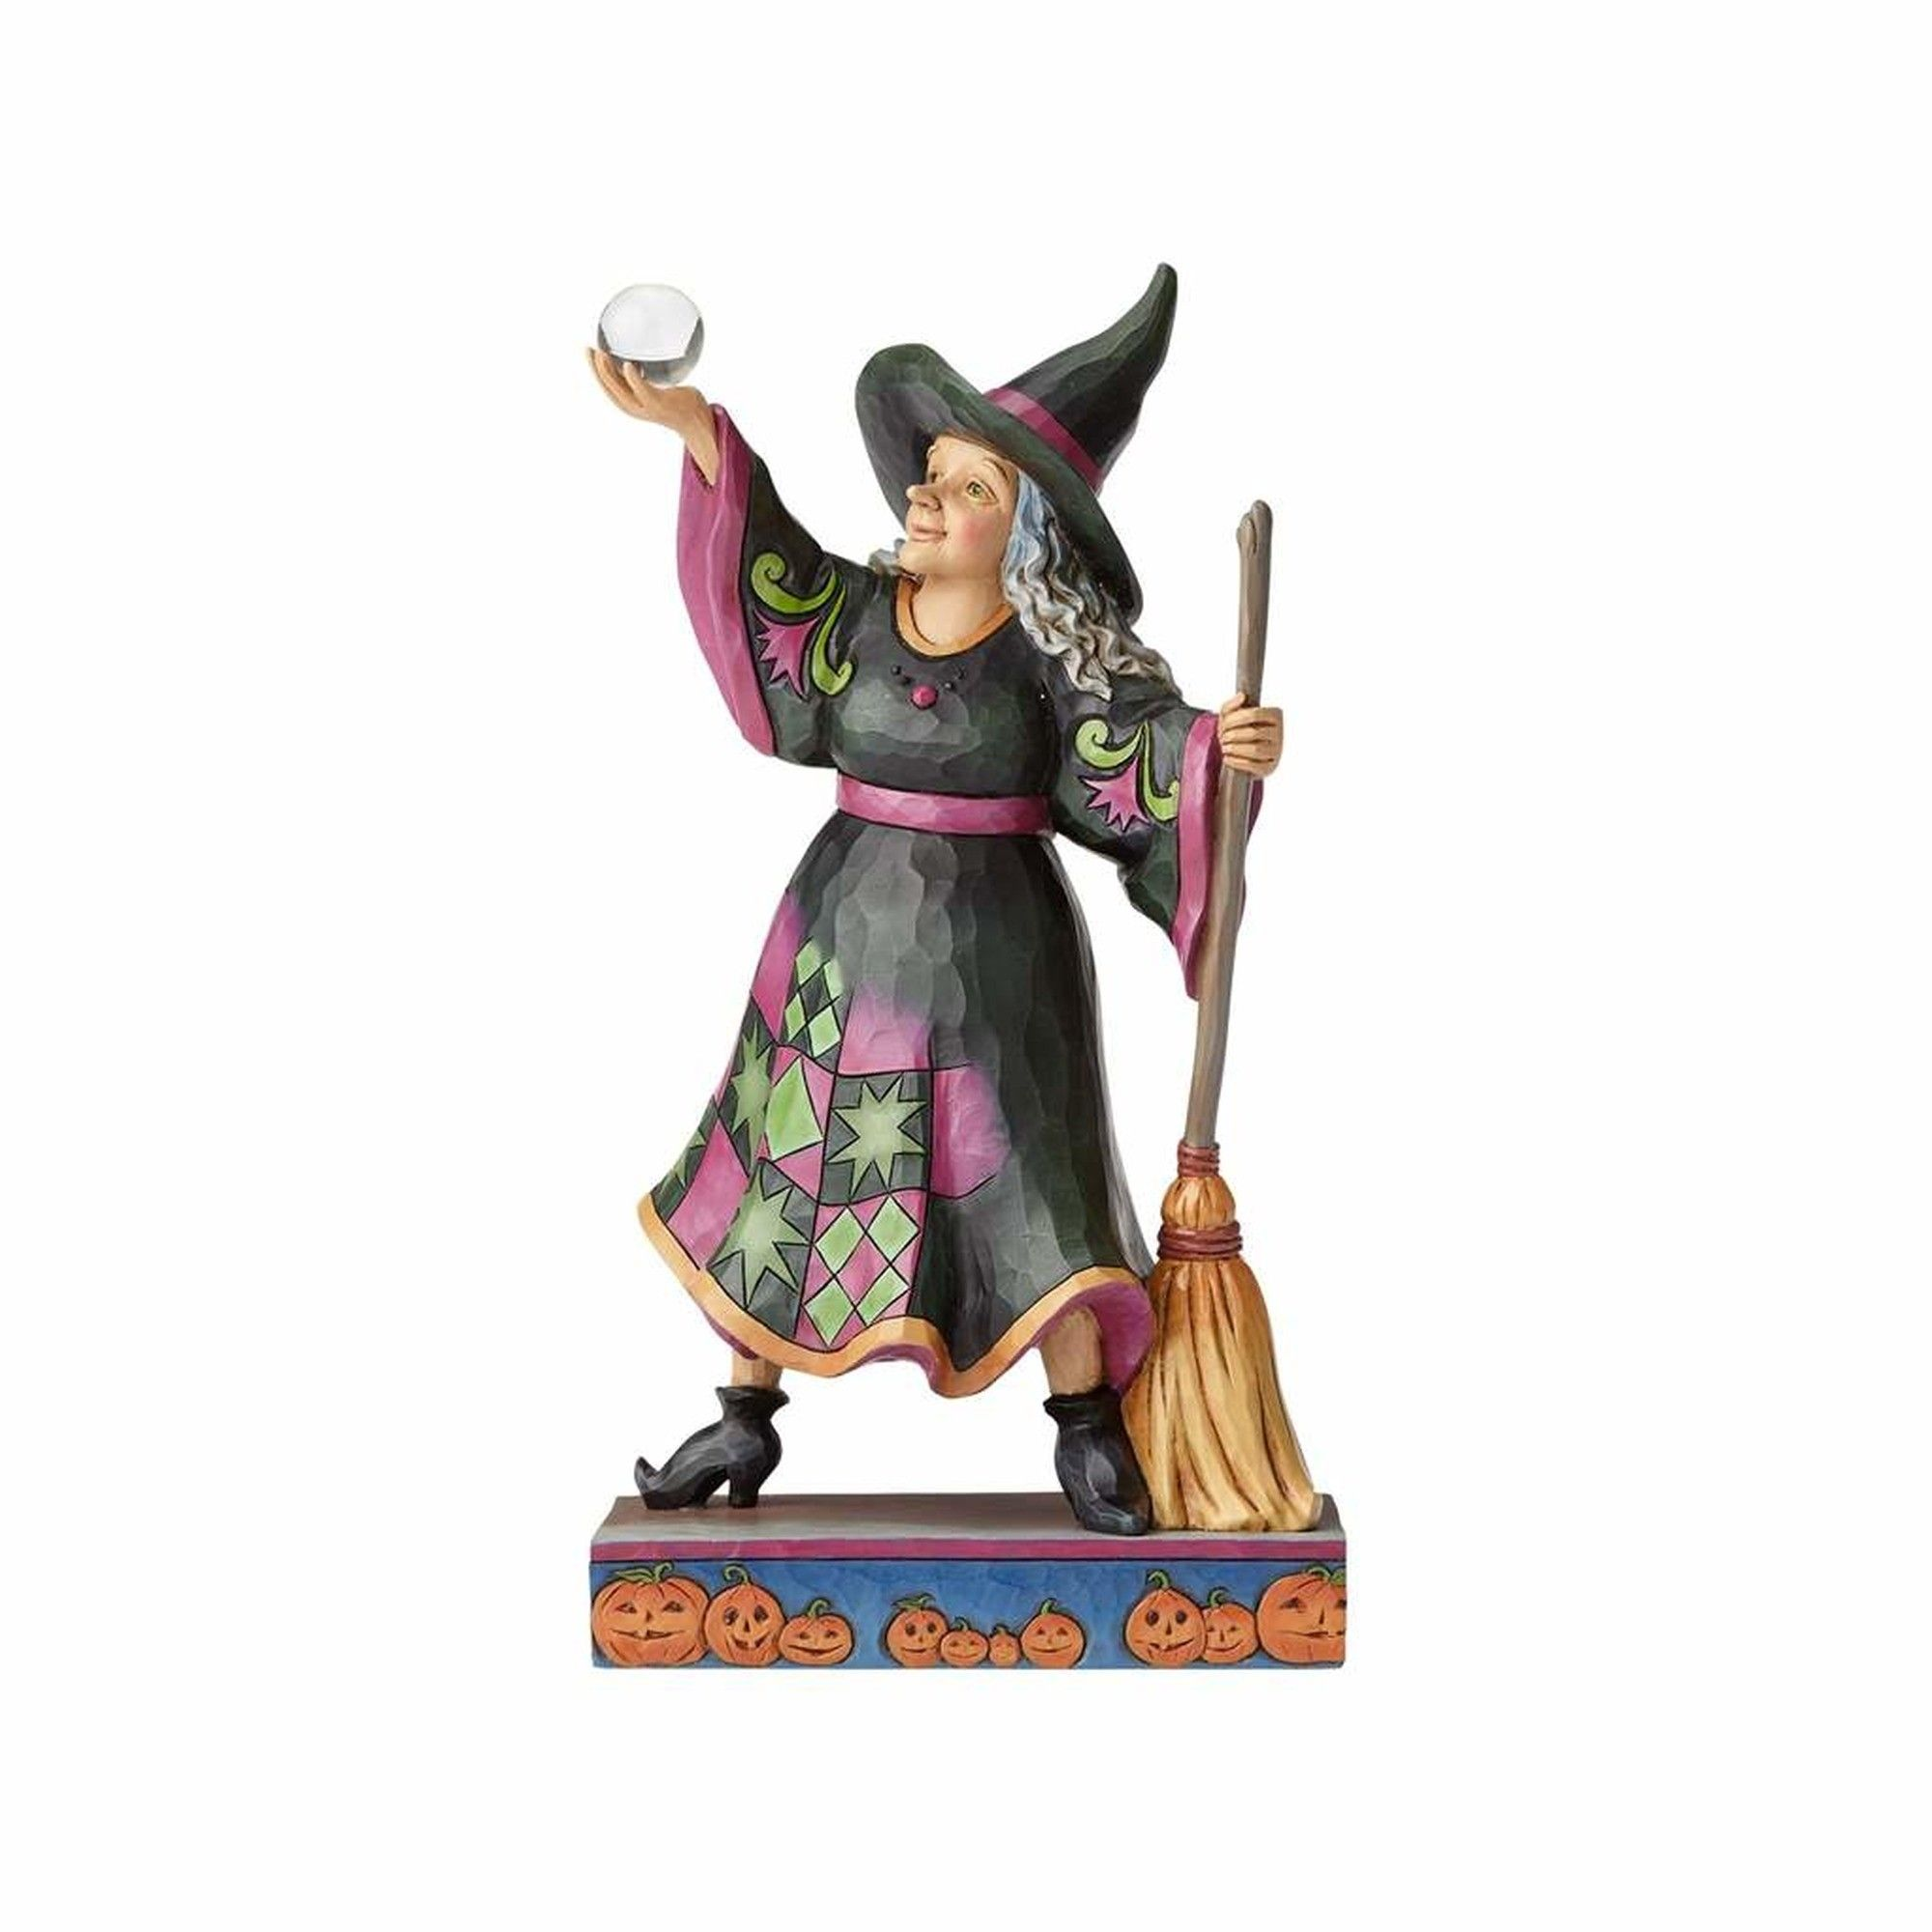 The Witch Is In Witch With Crystal Ball And Broom Figurine New Fun Halloween Decor Halloween Witch Crystal Ball